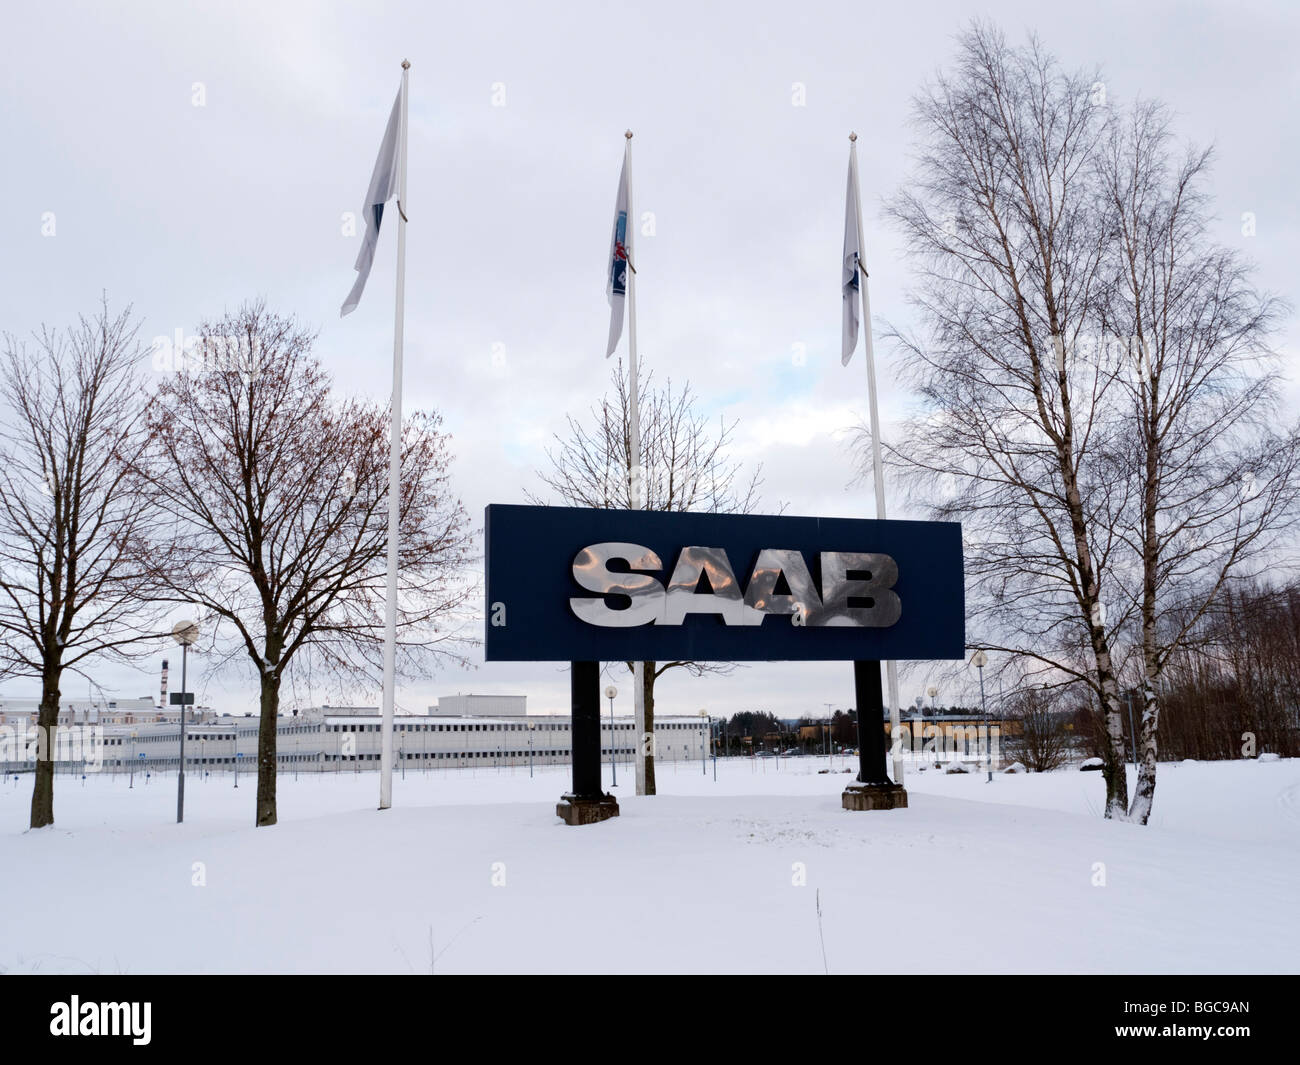 Views of Saab car factory at base in Trollhattan in Sweden - Stock Image